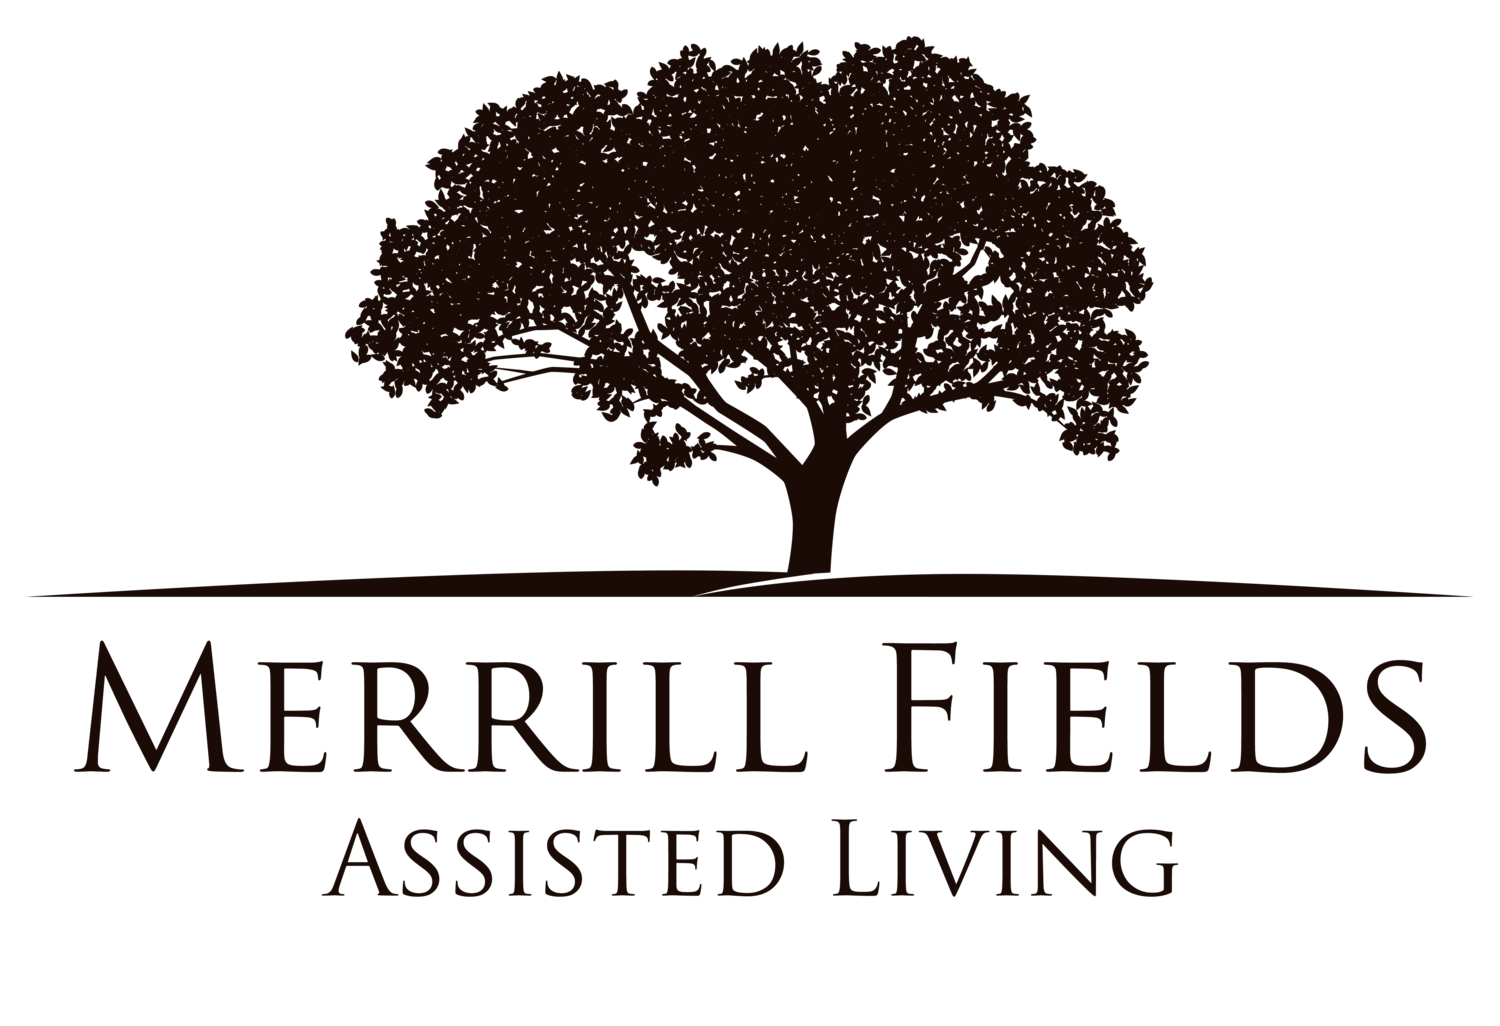 Merrill Fields Assisted Living